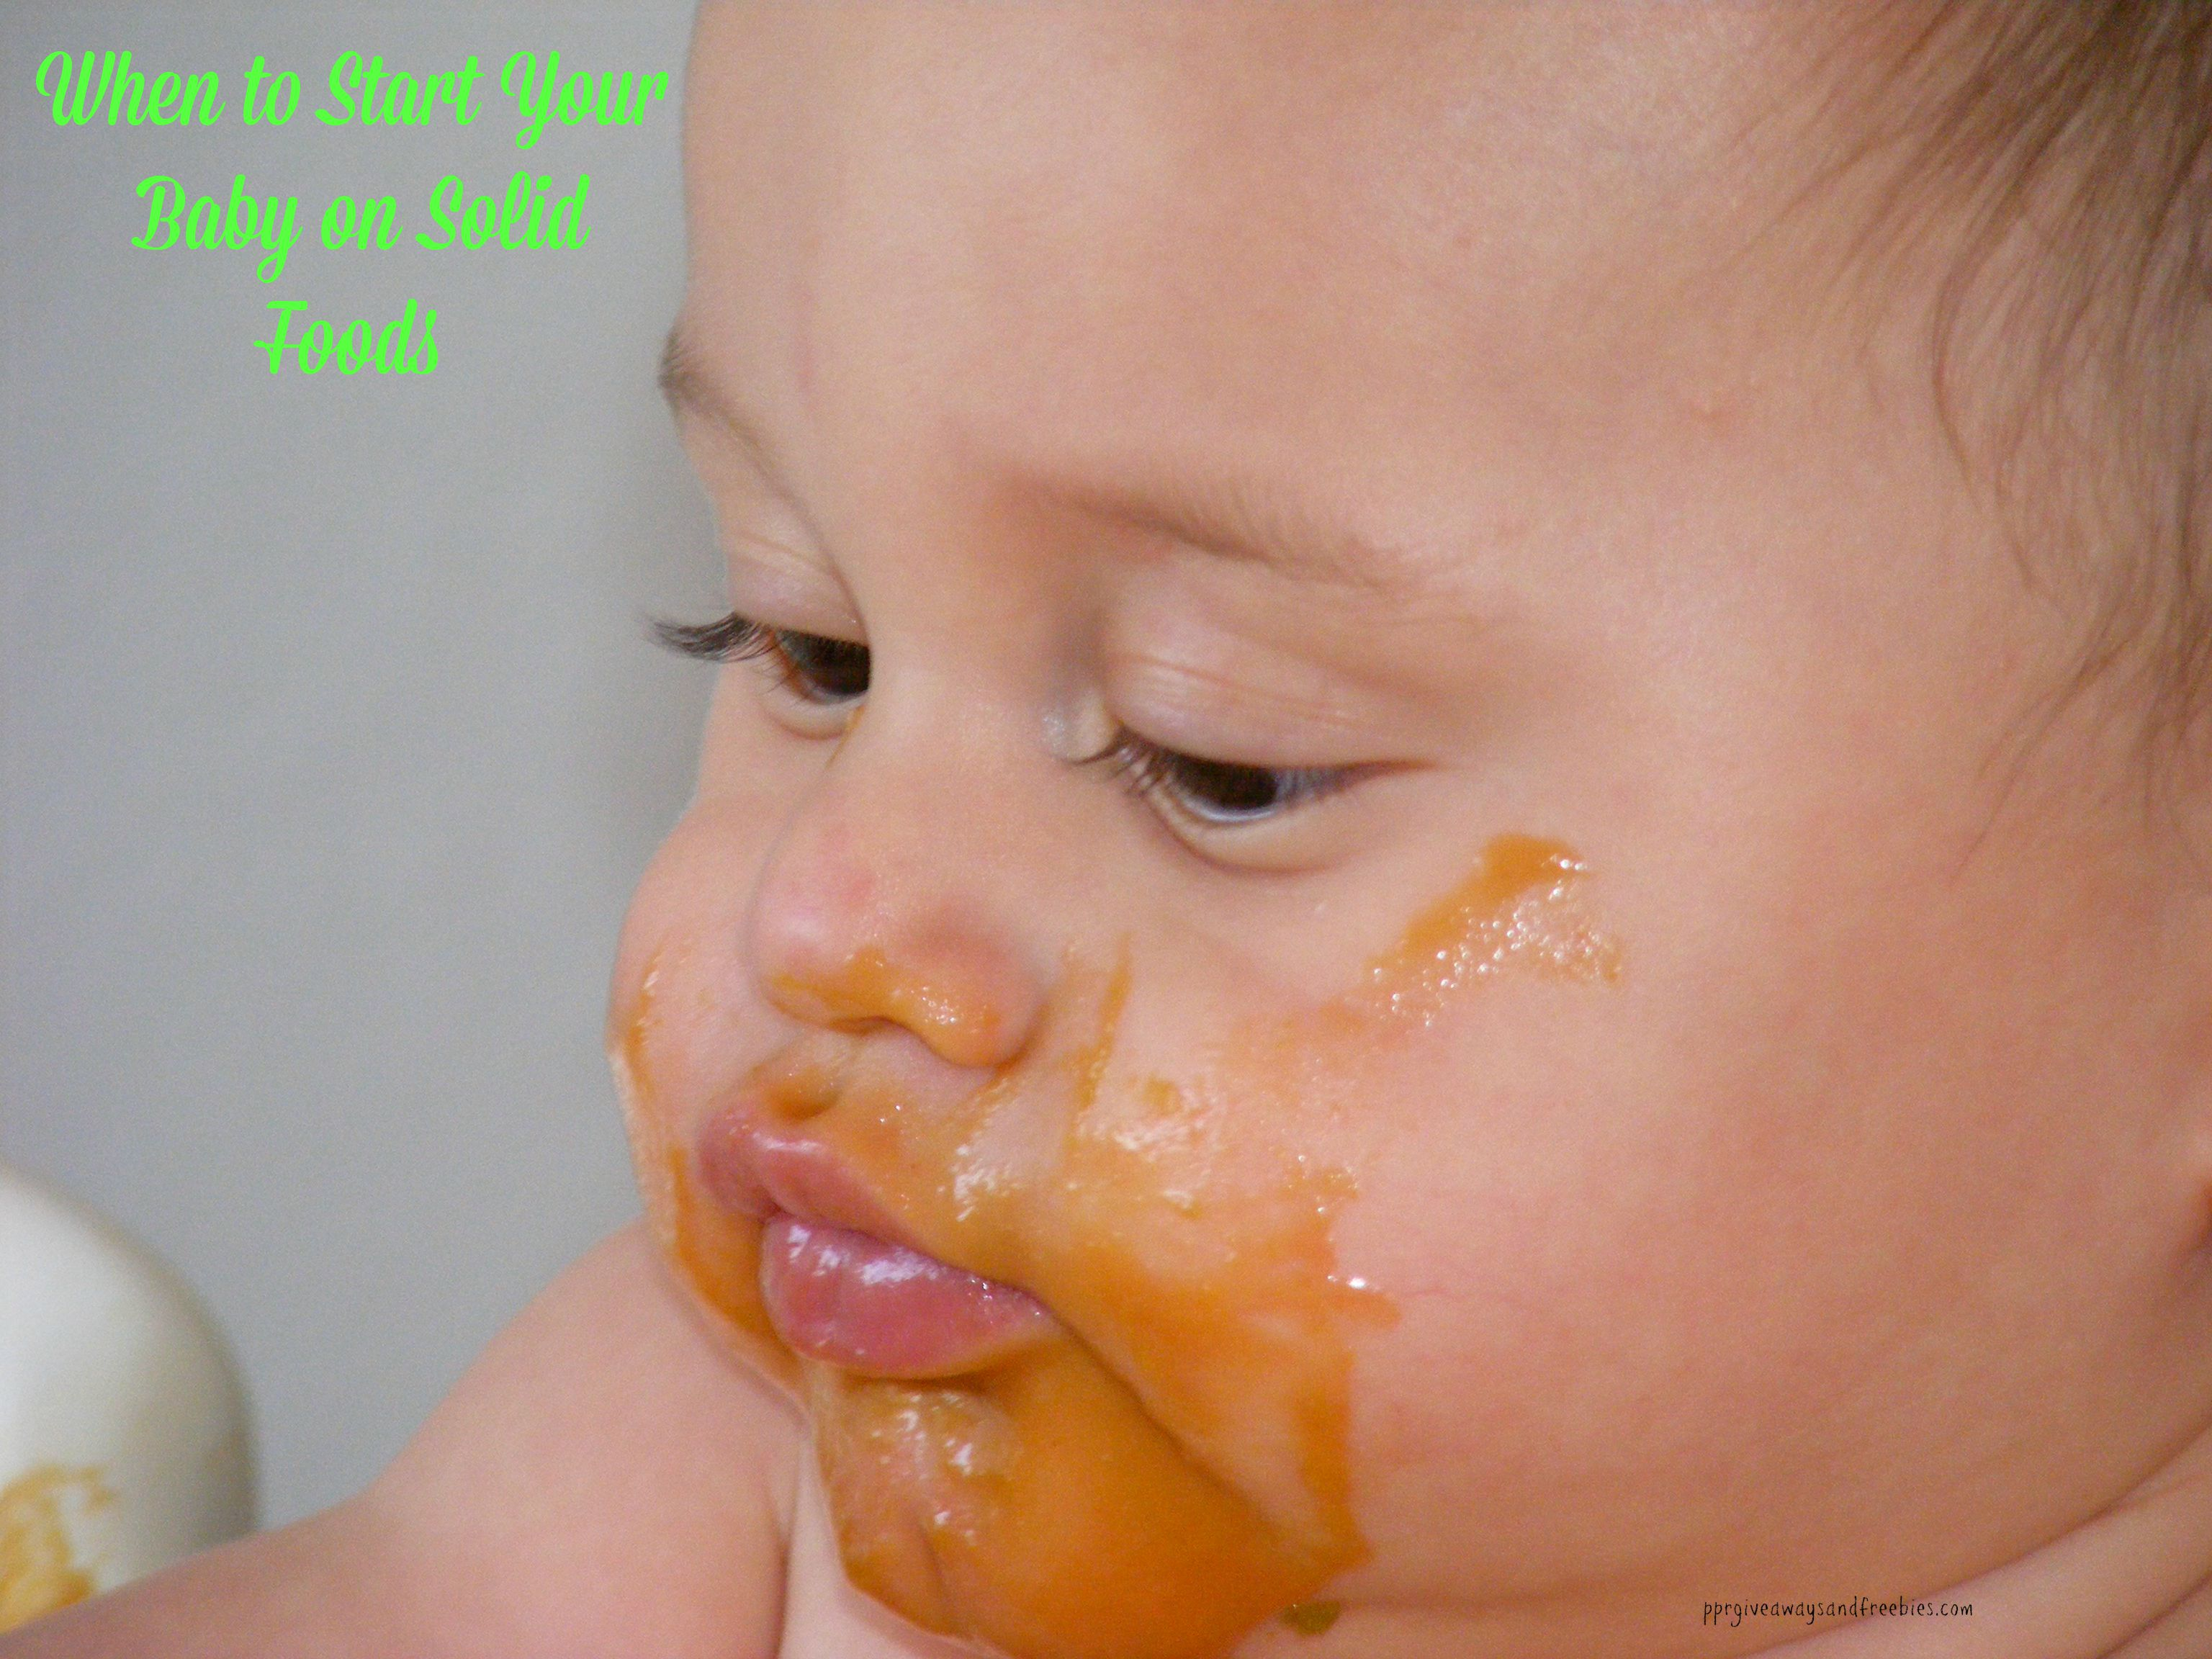 When to Start Your Baby on Solid Foods